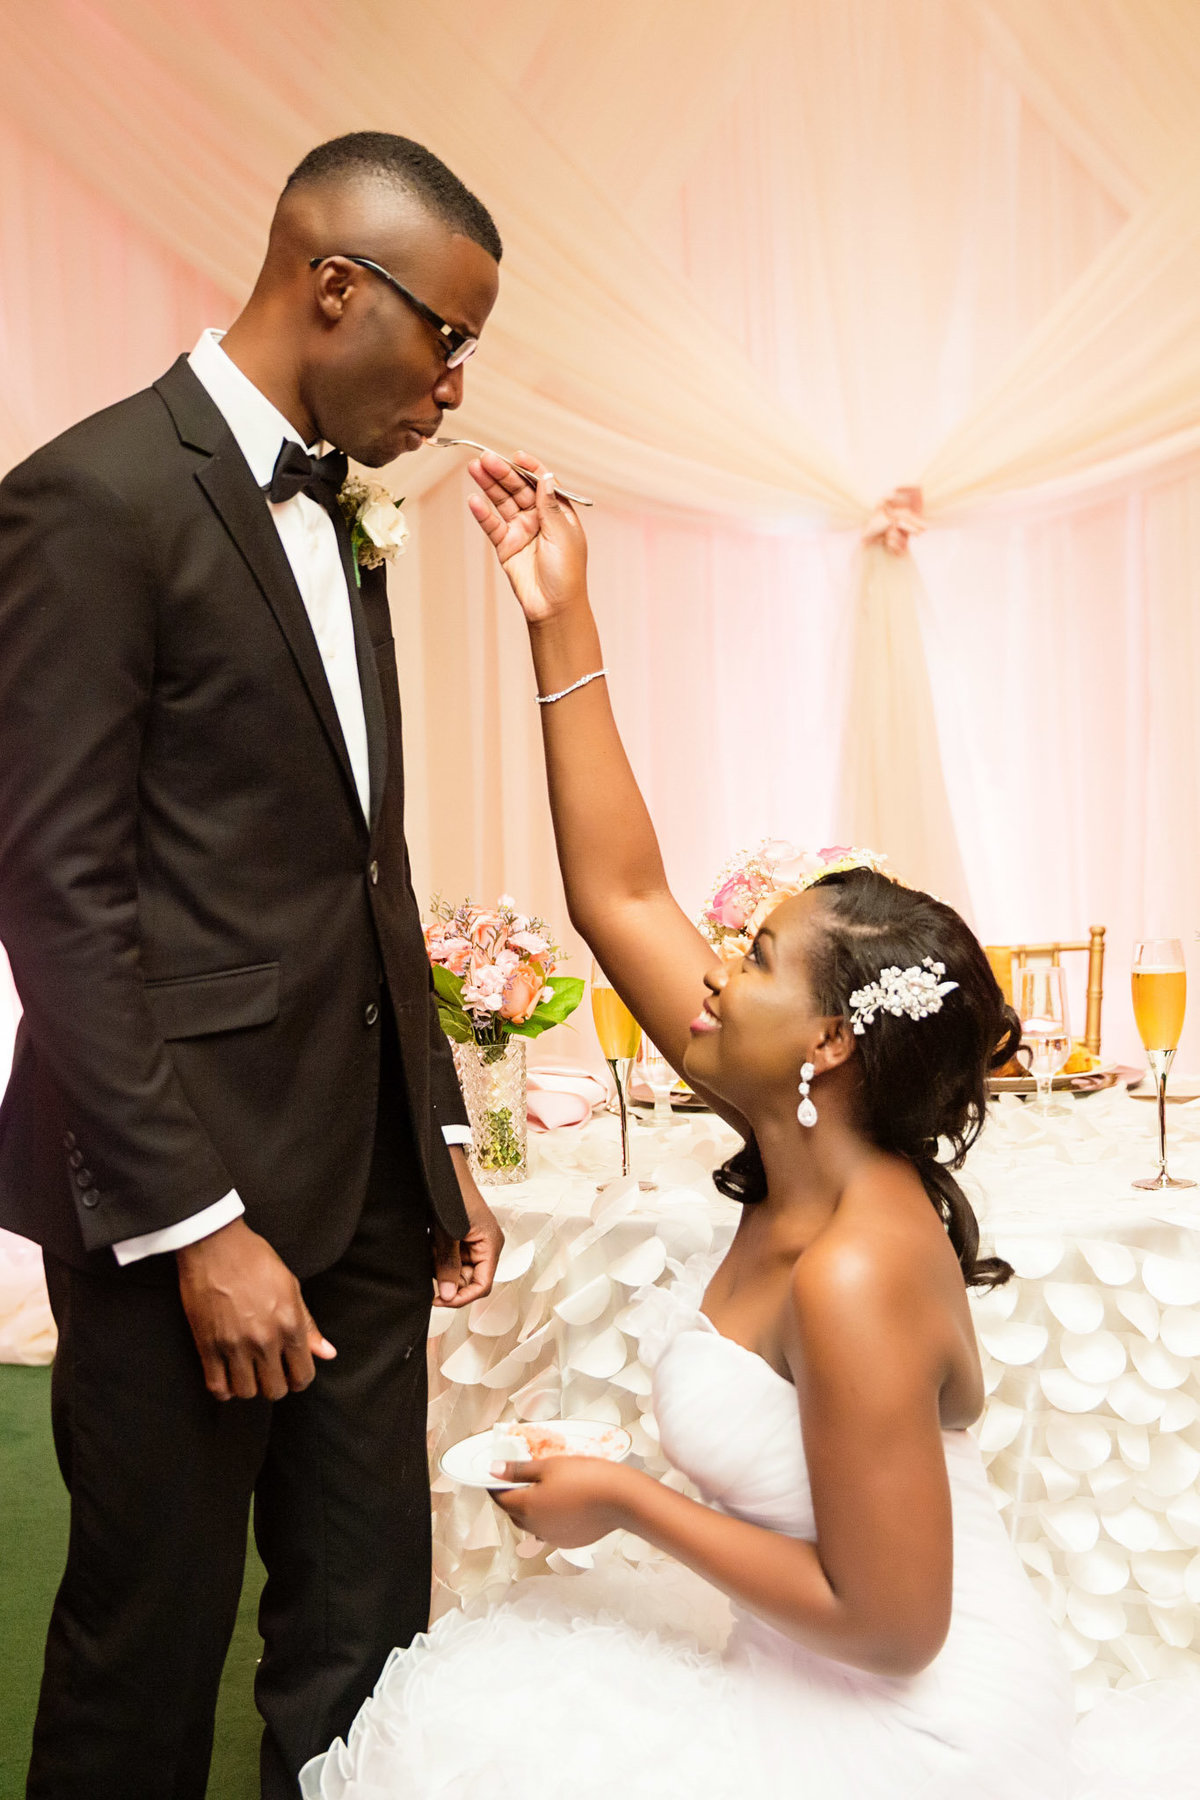 For-FacebookAndWebsites-Yewande-Lolu-Wedding-Winston-Salem-Clemmons-NC-Yoruba-Nigerian-Kumolu-Studios-1071